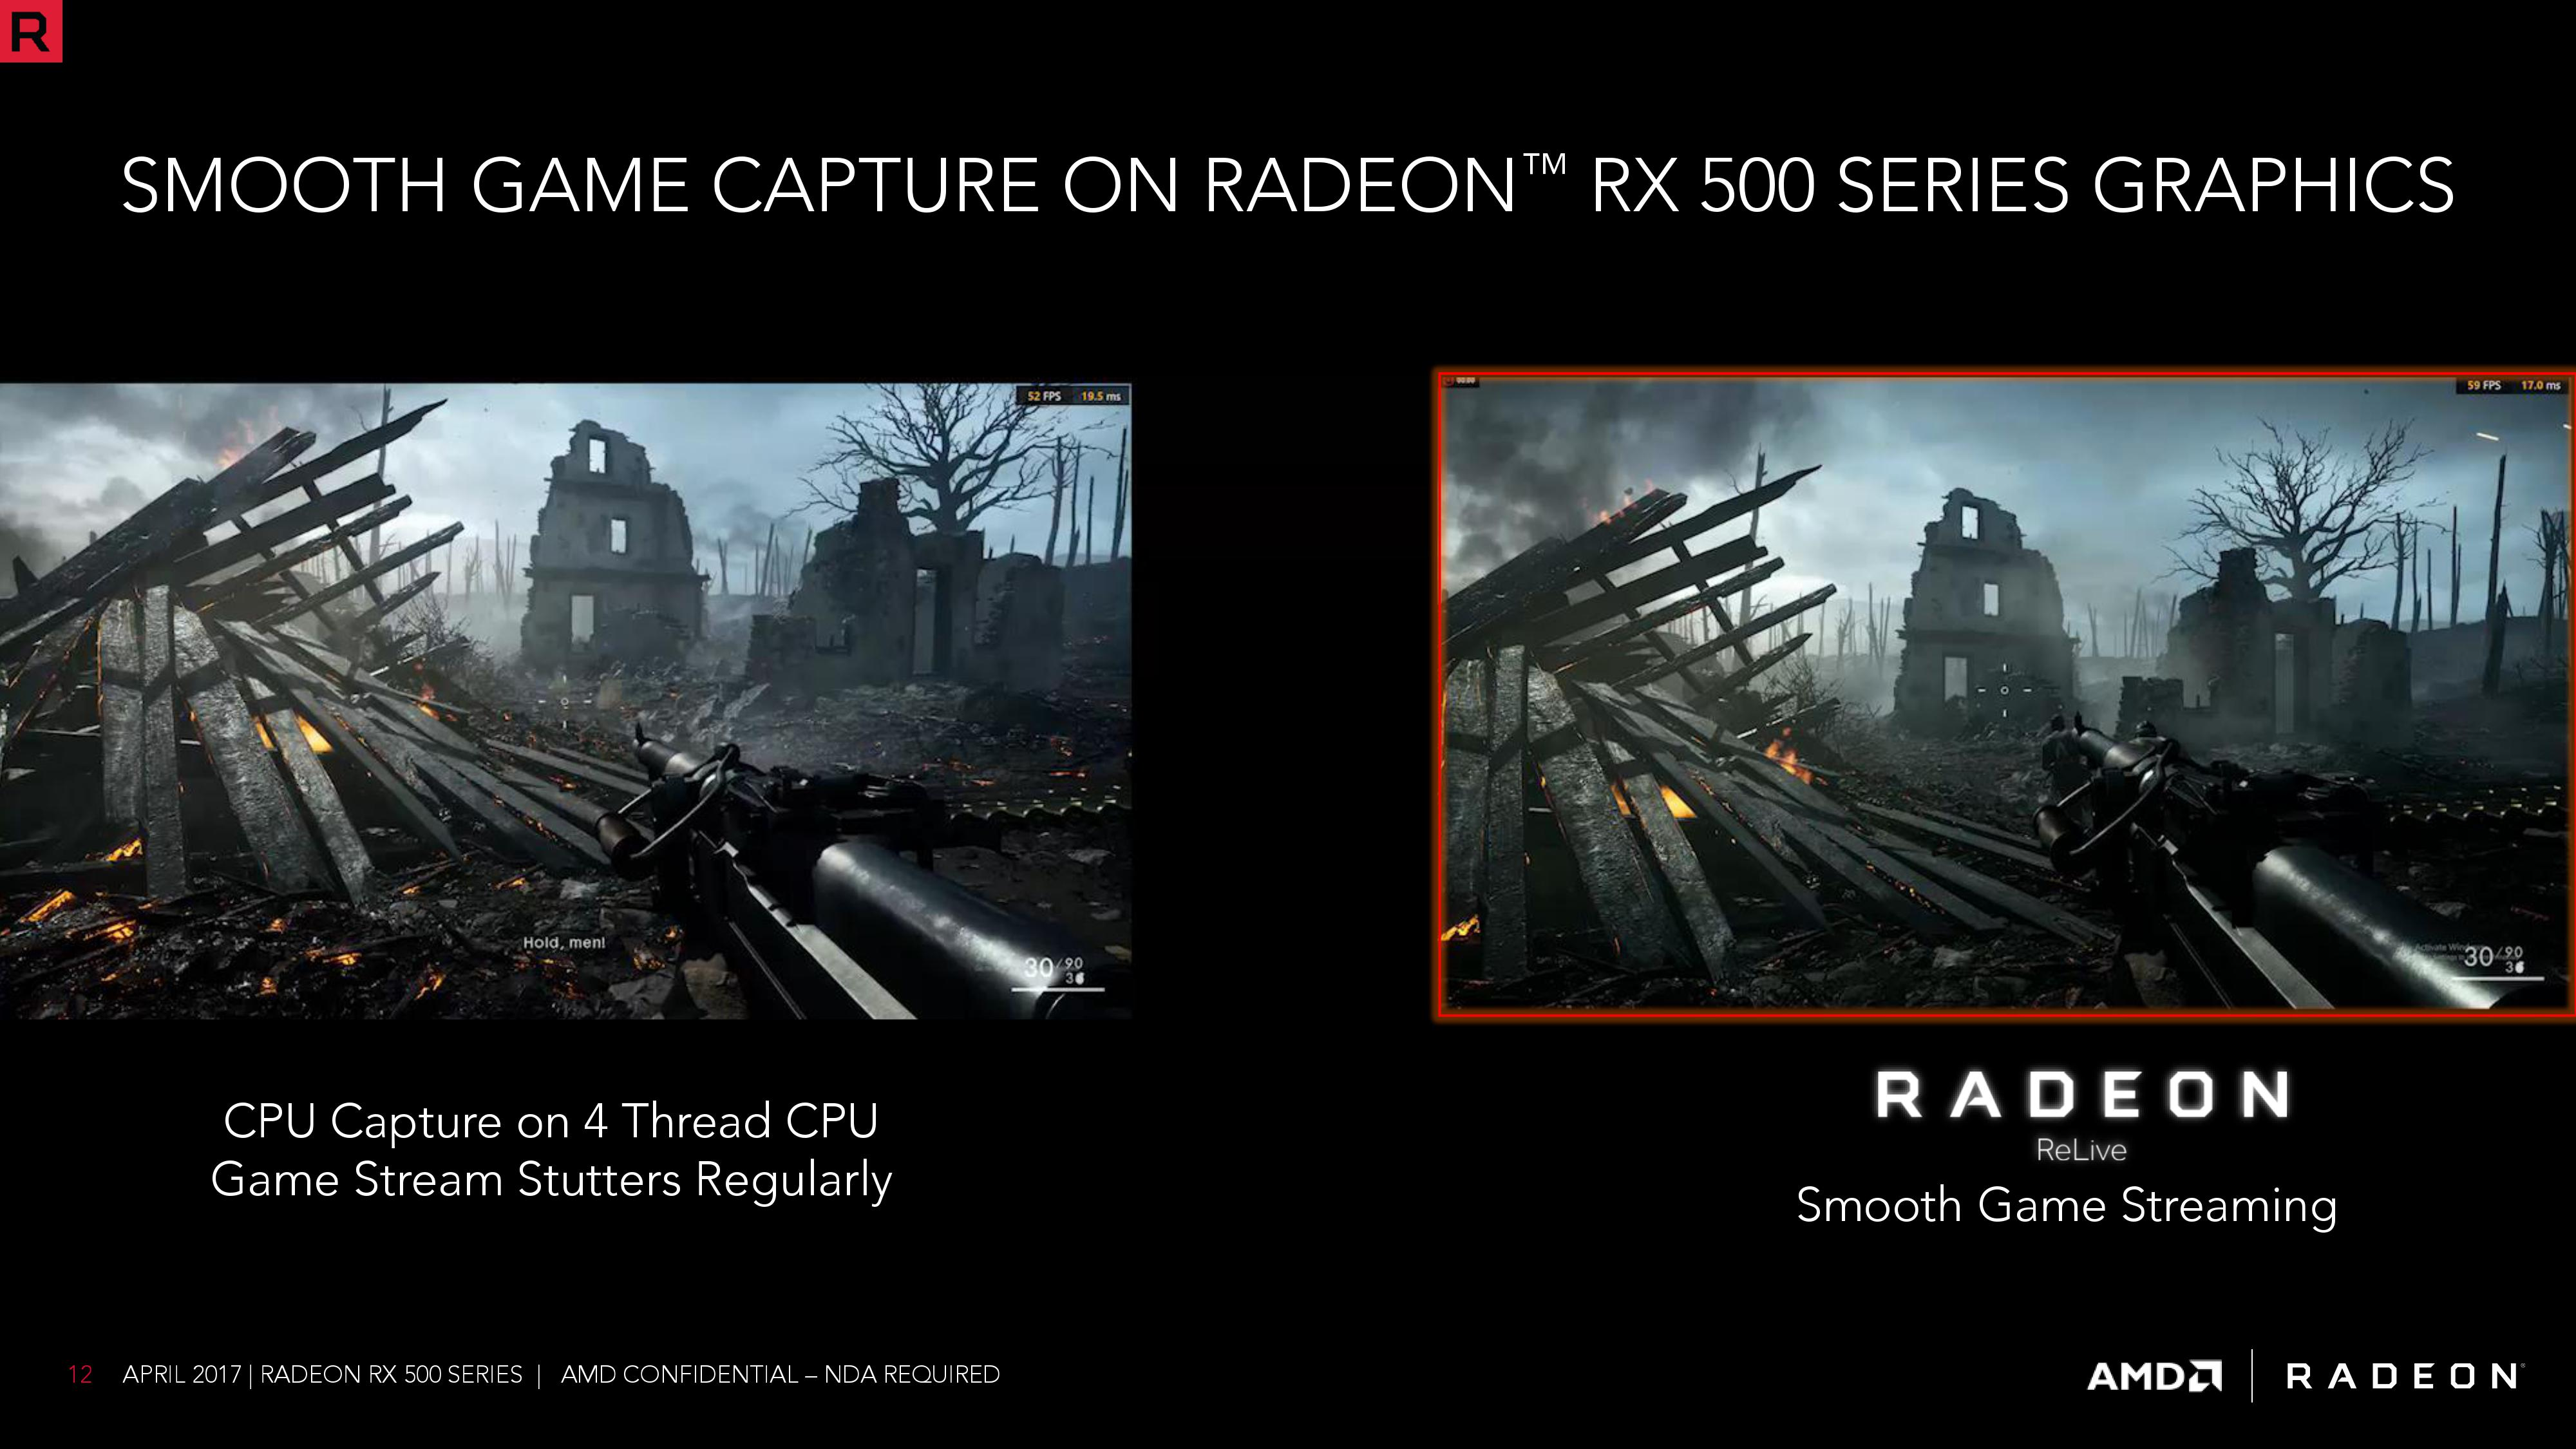 AMD Radeon RX 500 Series Launched - RX 580 and RX 570 Review